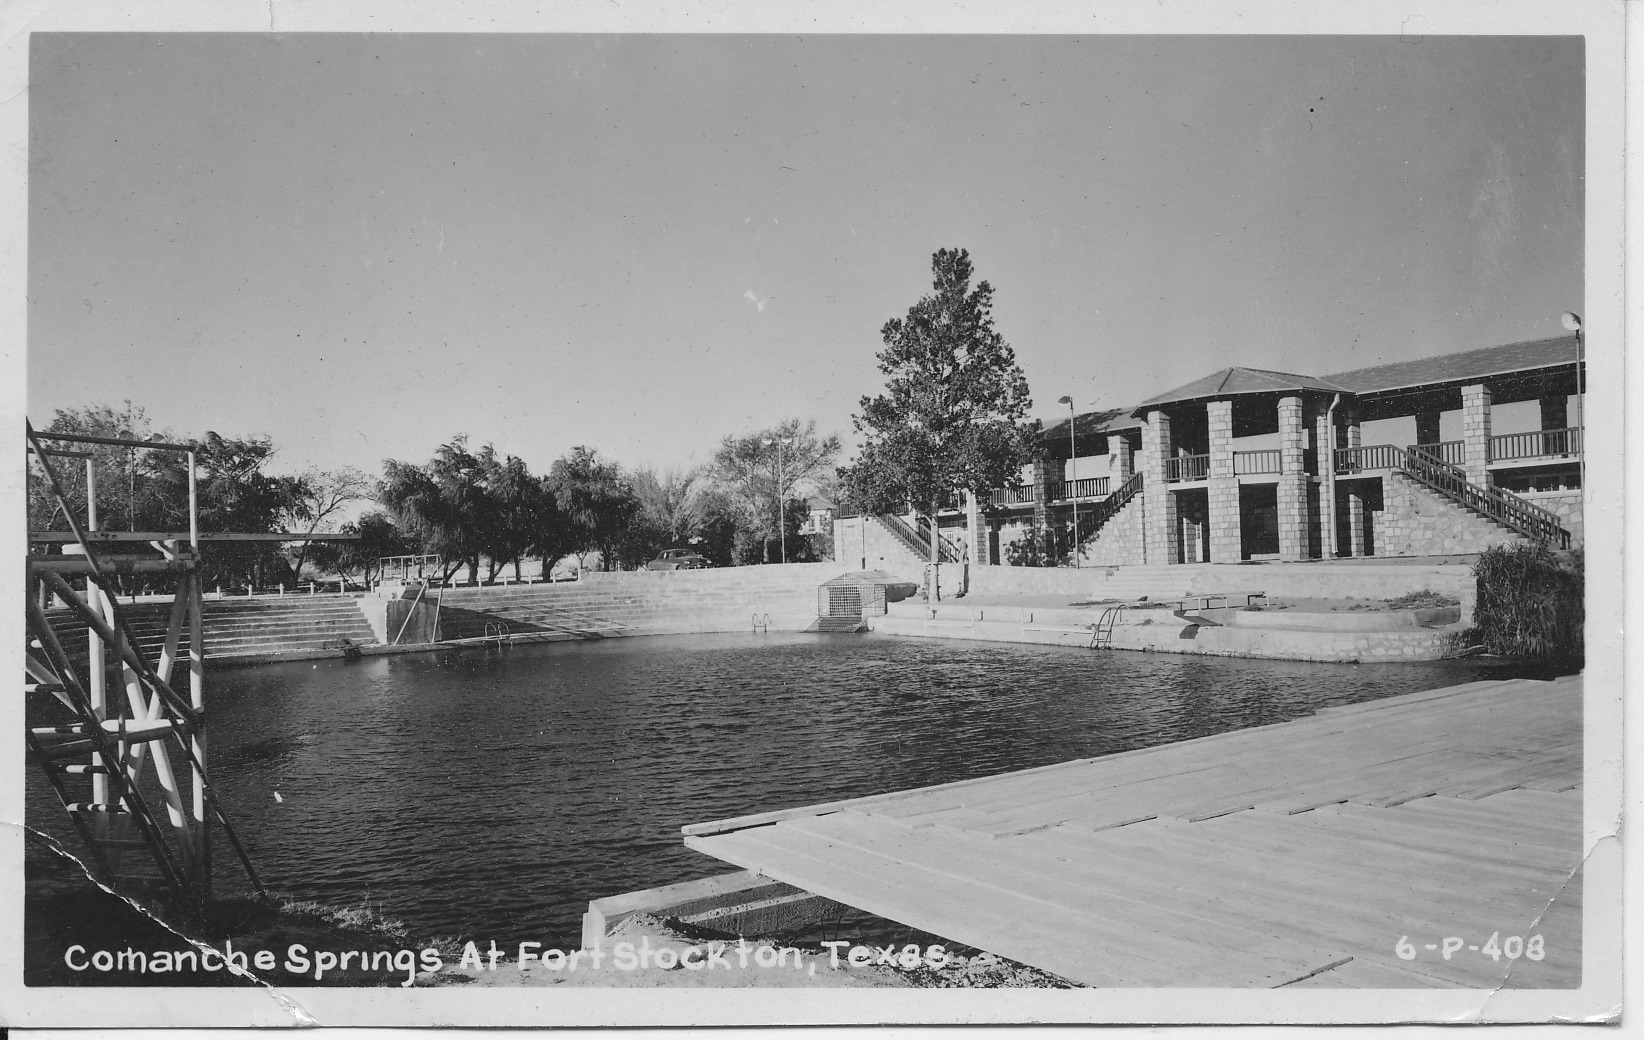 Comanche Springs in 1948, when it was fed by nearly 60 million gallons a day of spring water.